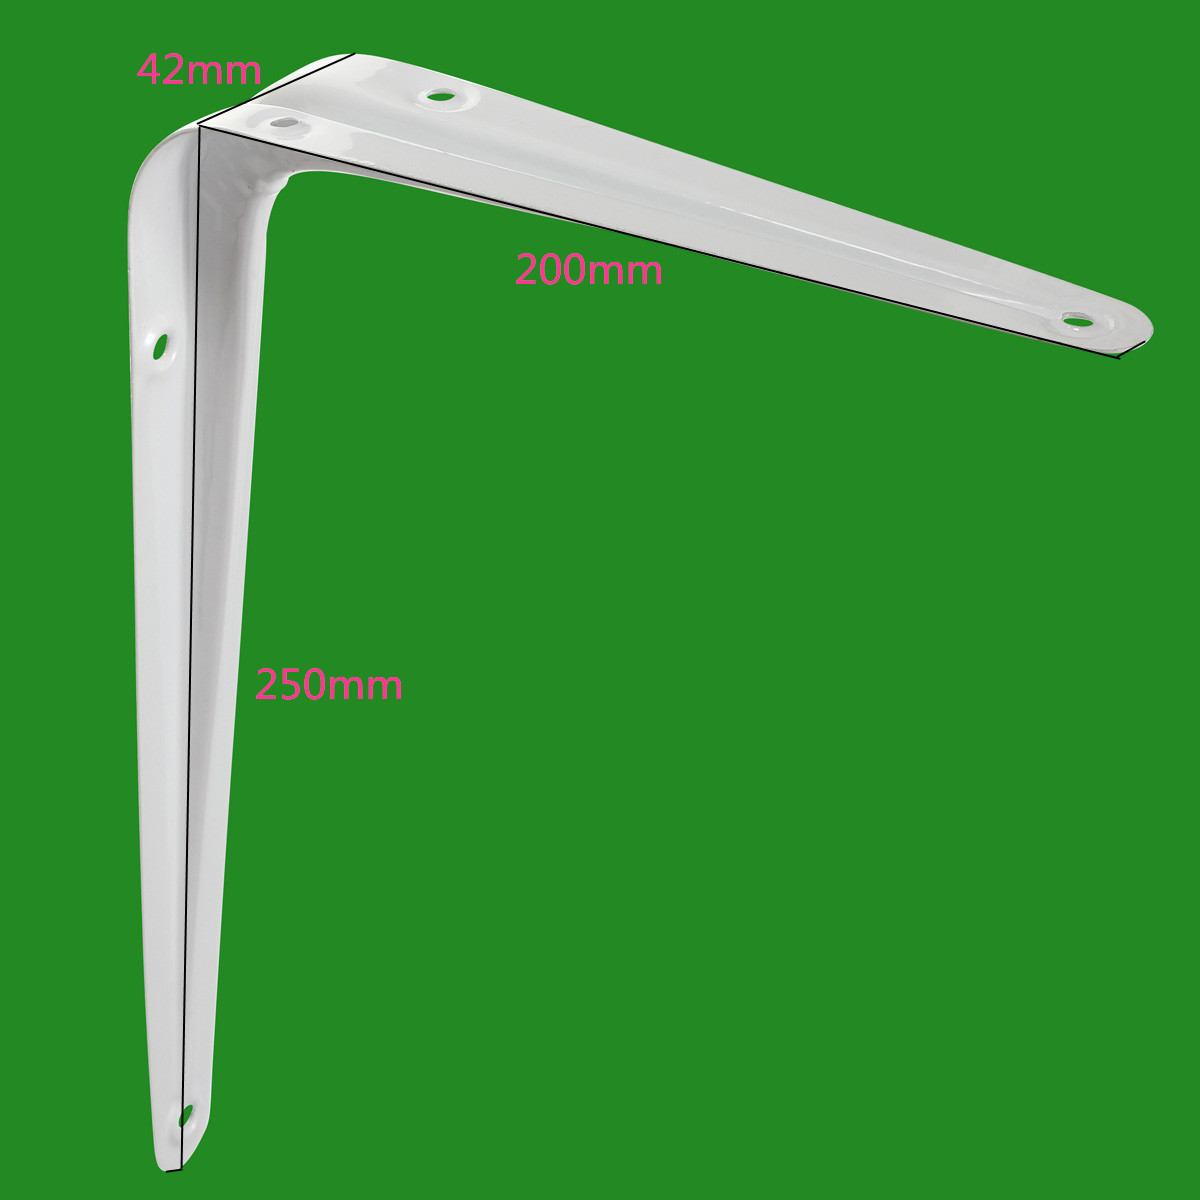 Home Metal Shelf Support Mount Angle London Shelving Brackets Holder 250 x 200mm